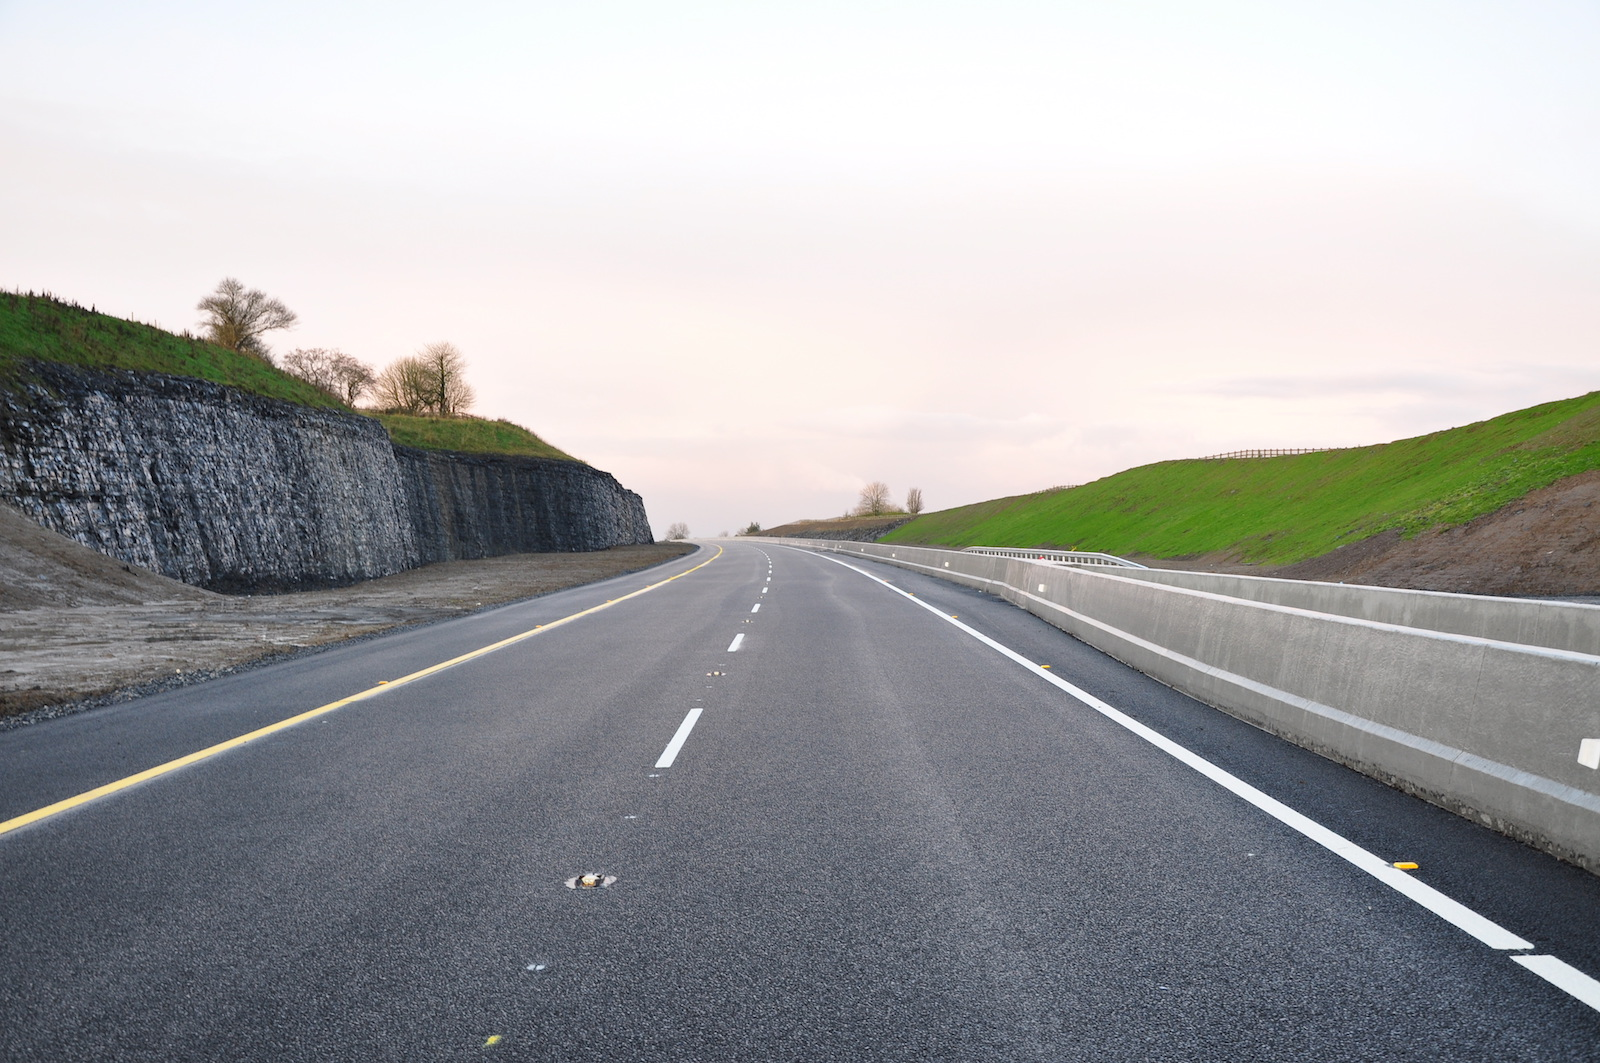 M6 motorway Ireland with rock cut out wall.